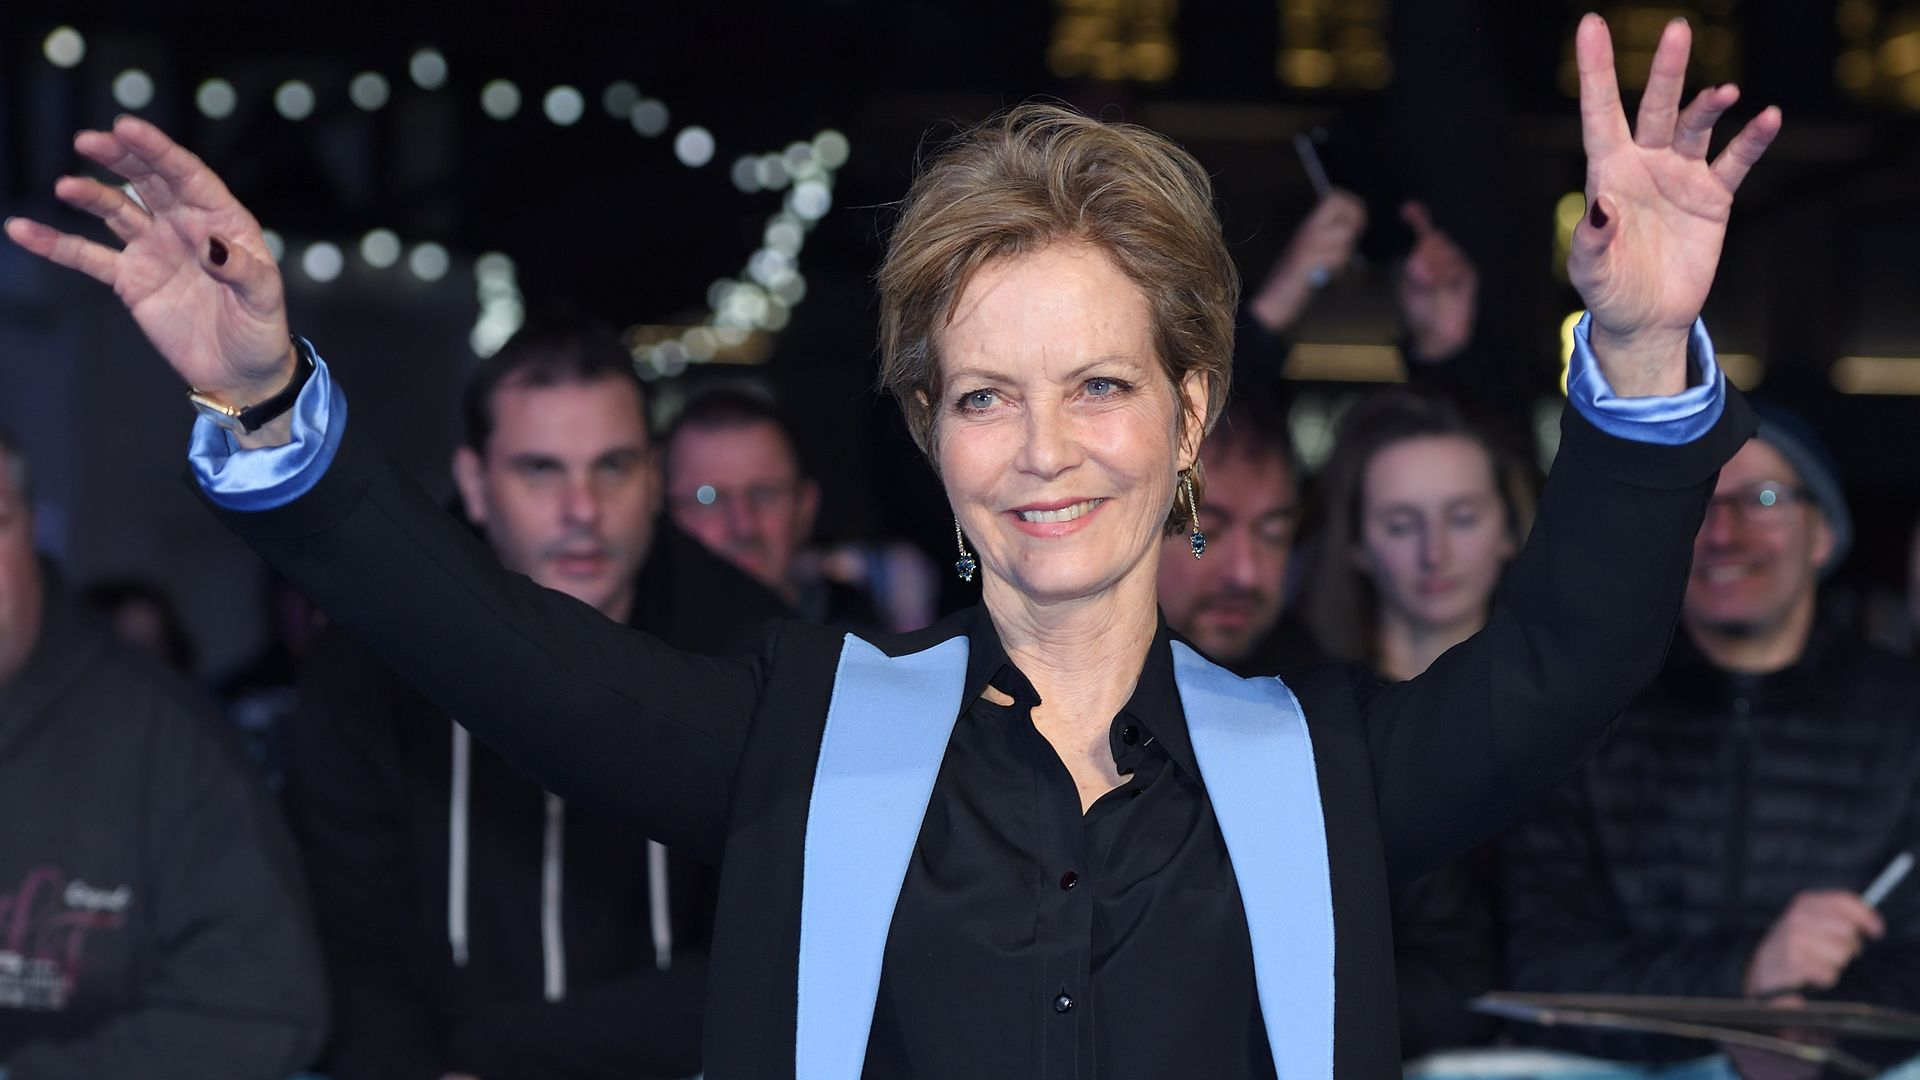 """Actor Jenny Seagrove attends the World Premiere of """"Another Mother's Son"""" at the Odeon Leicester Square on March 16, 2017 - Credit: Photo by Karwai Tang/WireImage"""